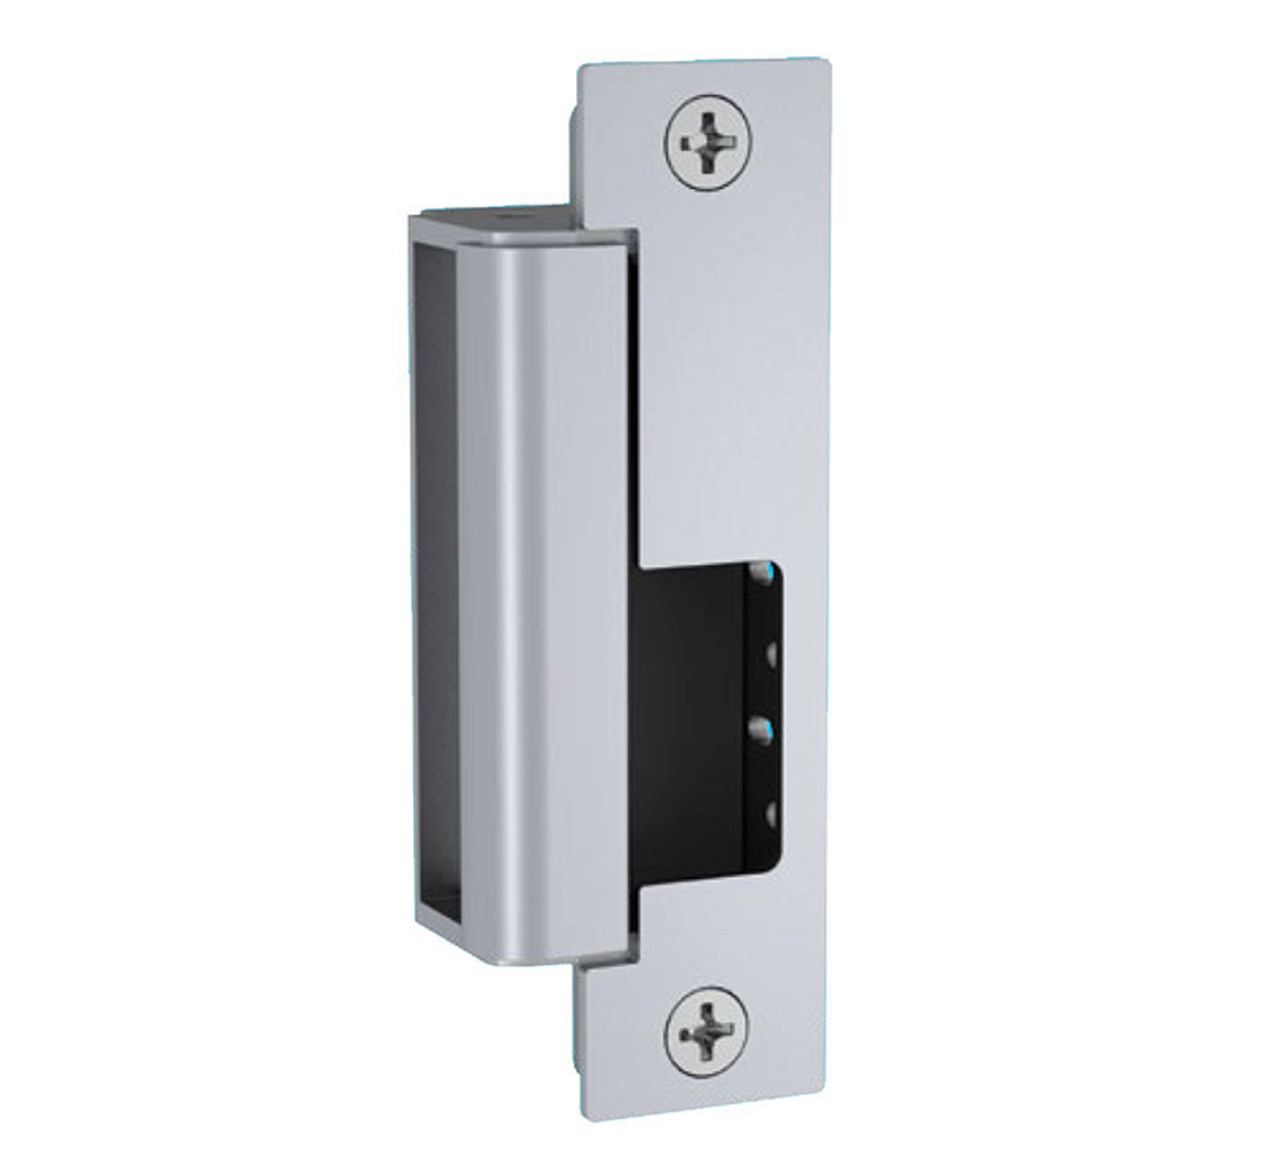 hes 1500 lm 630 auto sensing electric strike 12 24vdc fail safeHes 5000 Electric Strike Lock Installation Youtube #15